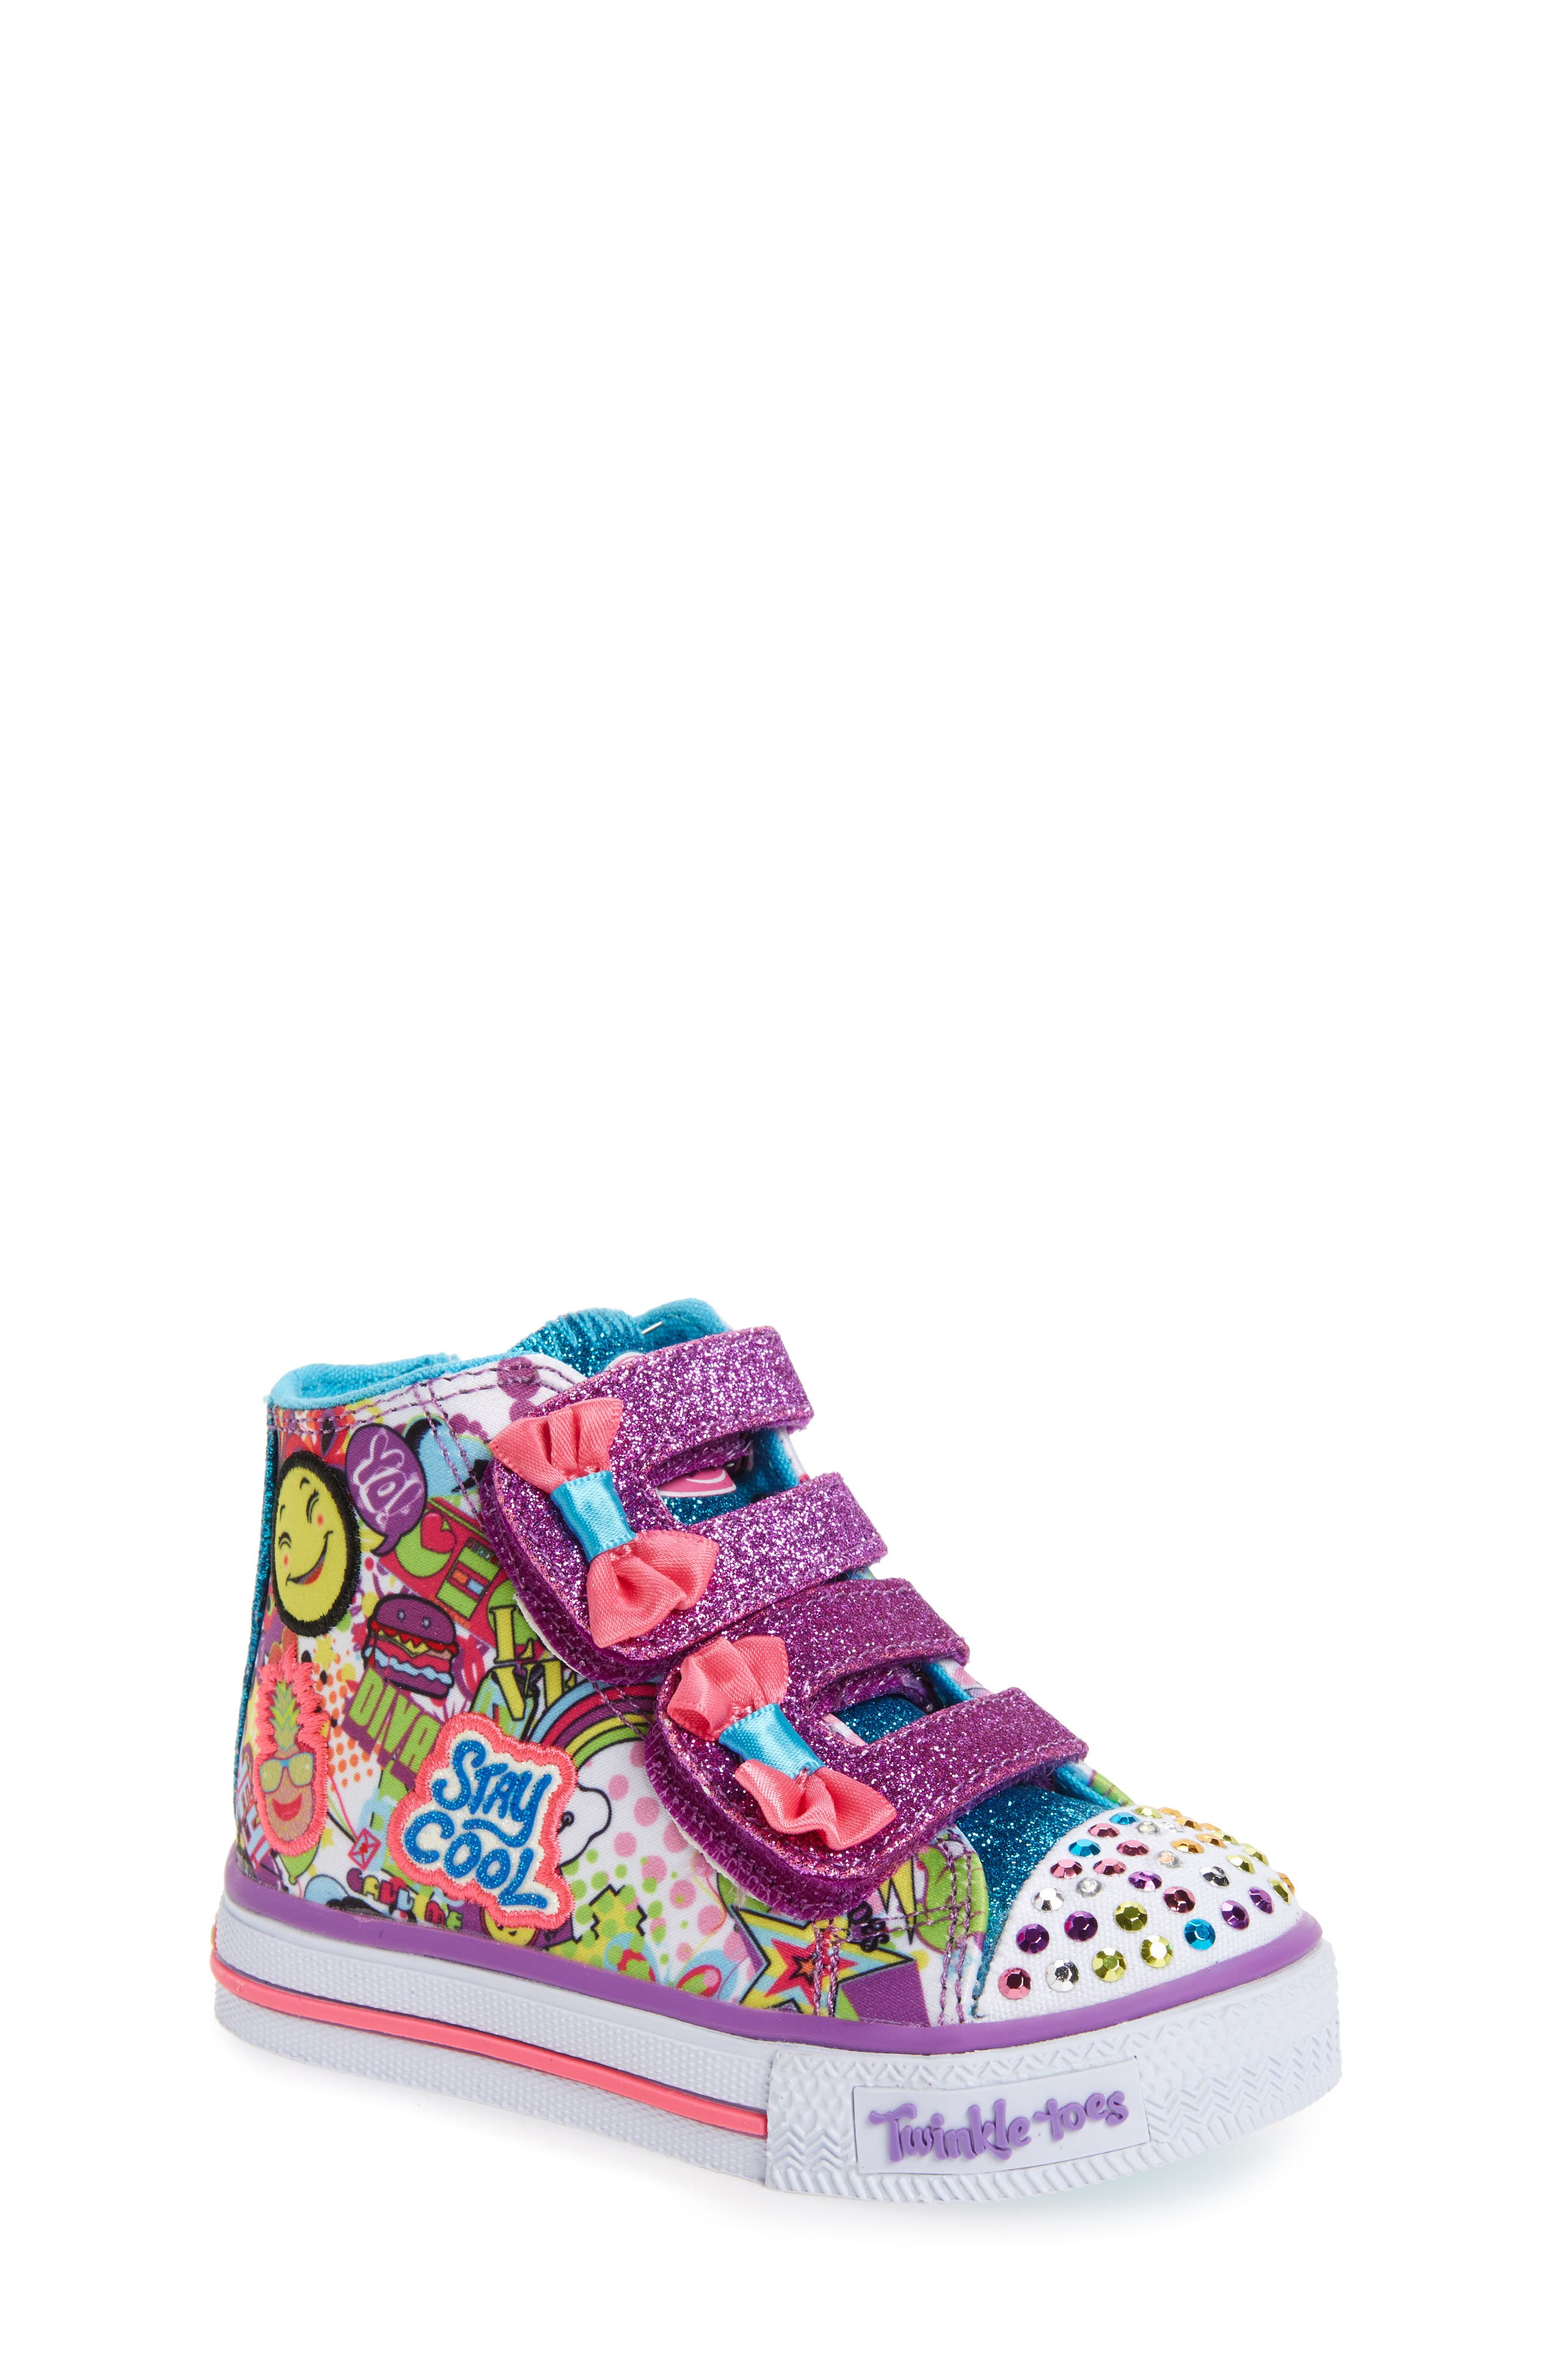 Alternate Image 1 Selected - SKECHERS Twinkle Toes Shuffles Light-Up Sneaker (Walker & Toddler)